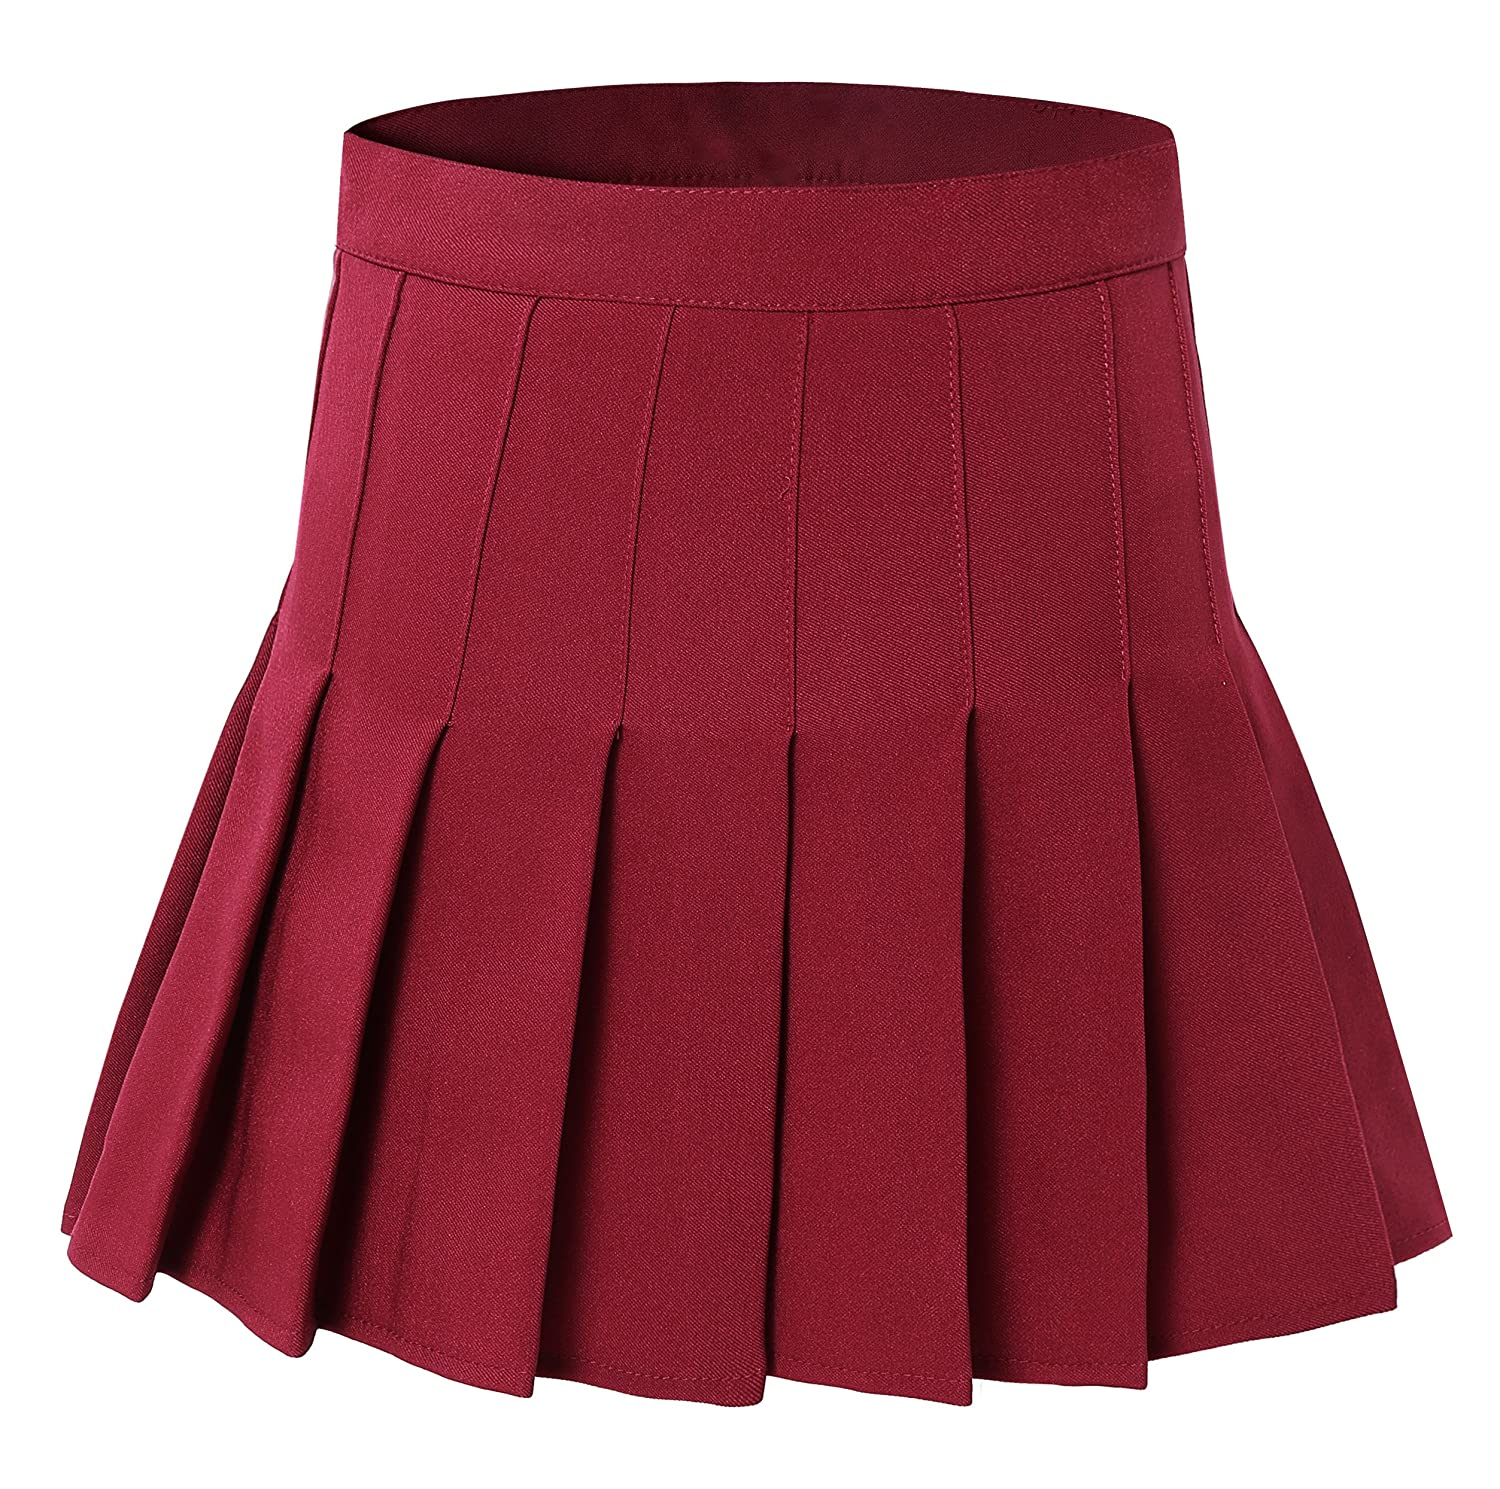 1732ea48c Amazon.com: Tremour Women High Waist Pleated Mini Tennis Skirt Solid Short  Skirts: Clothing